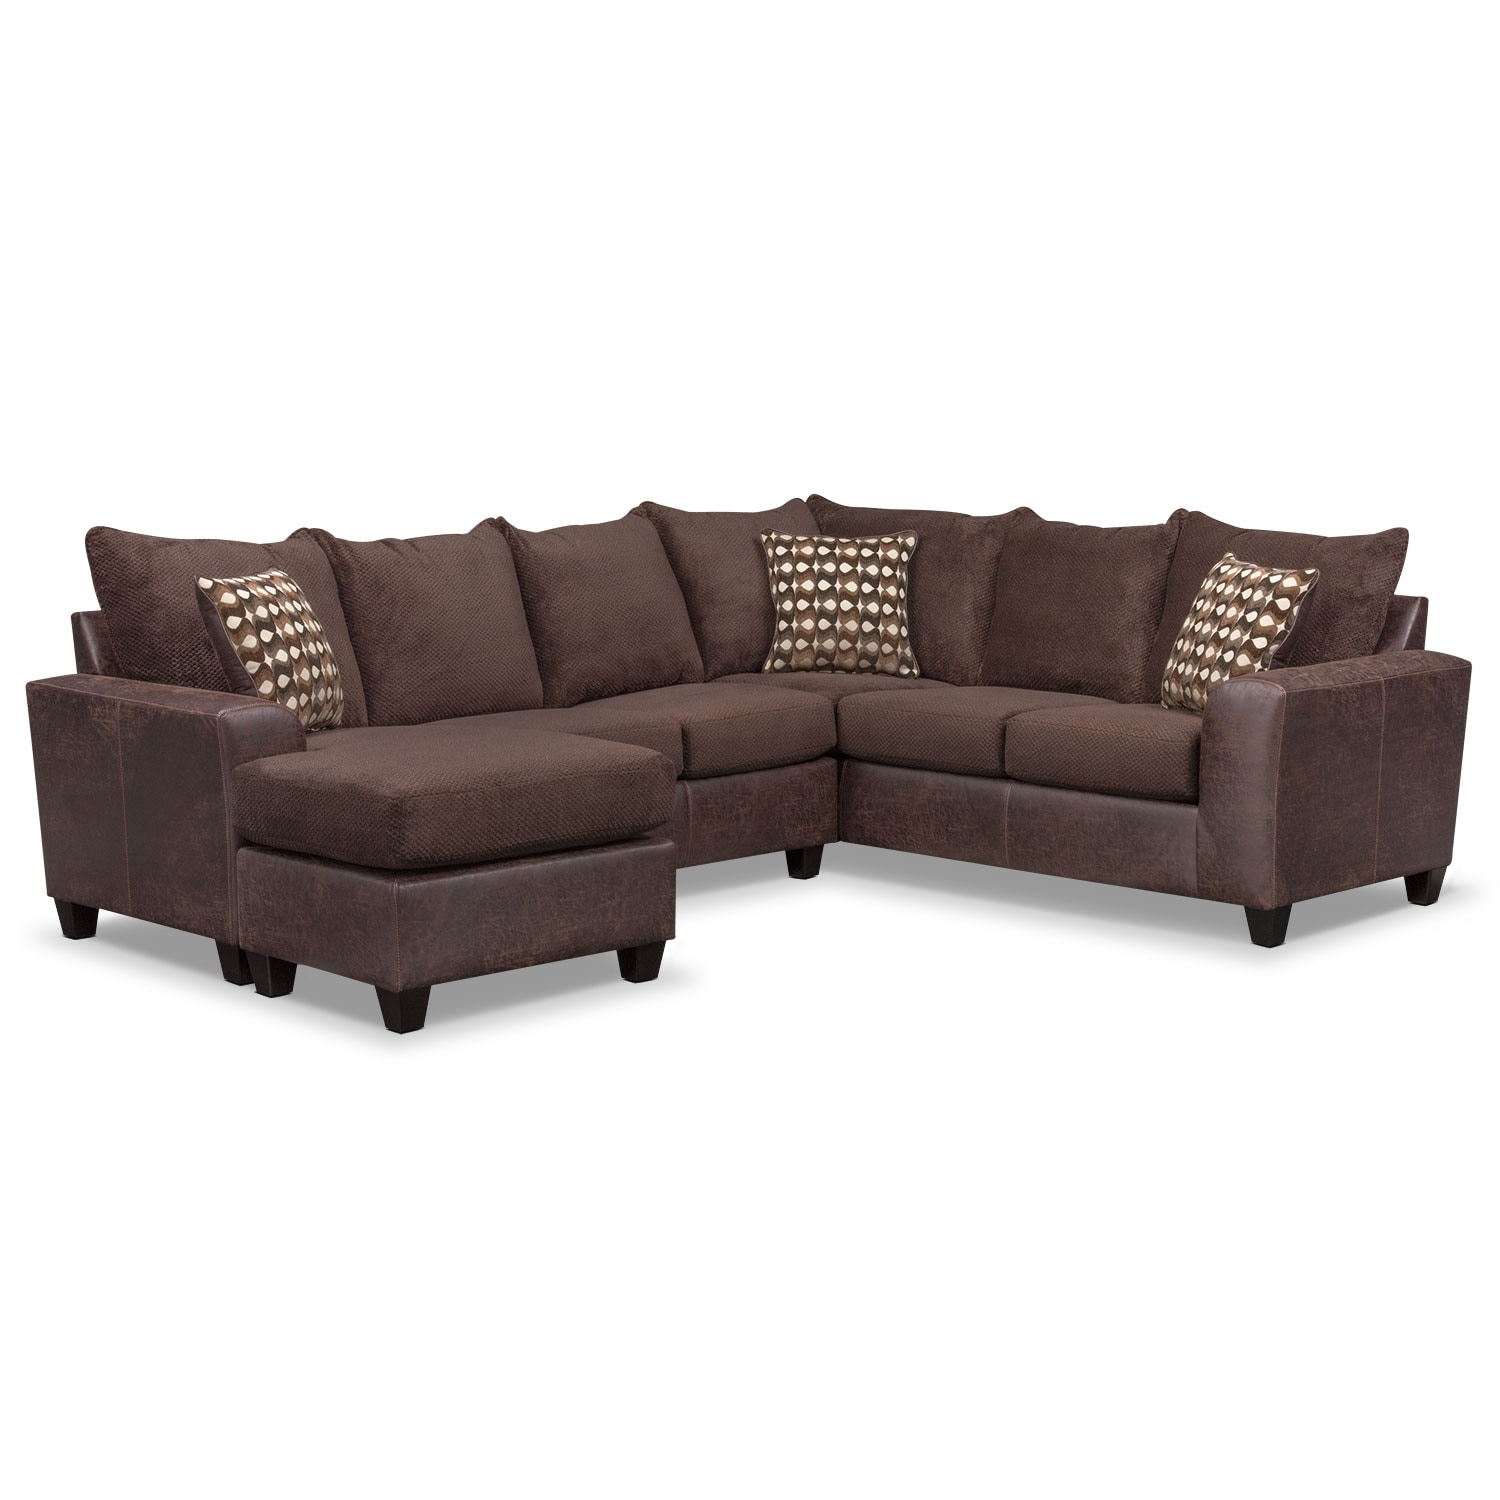 Jessa place 3 piece sectional - Brando 3piece Sectional With Modular Chaise Chocolate By Factory Outlet 3 Piece Sectional Dimensions